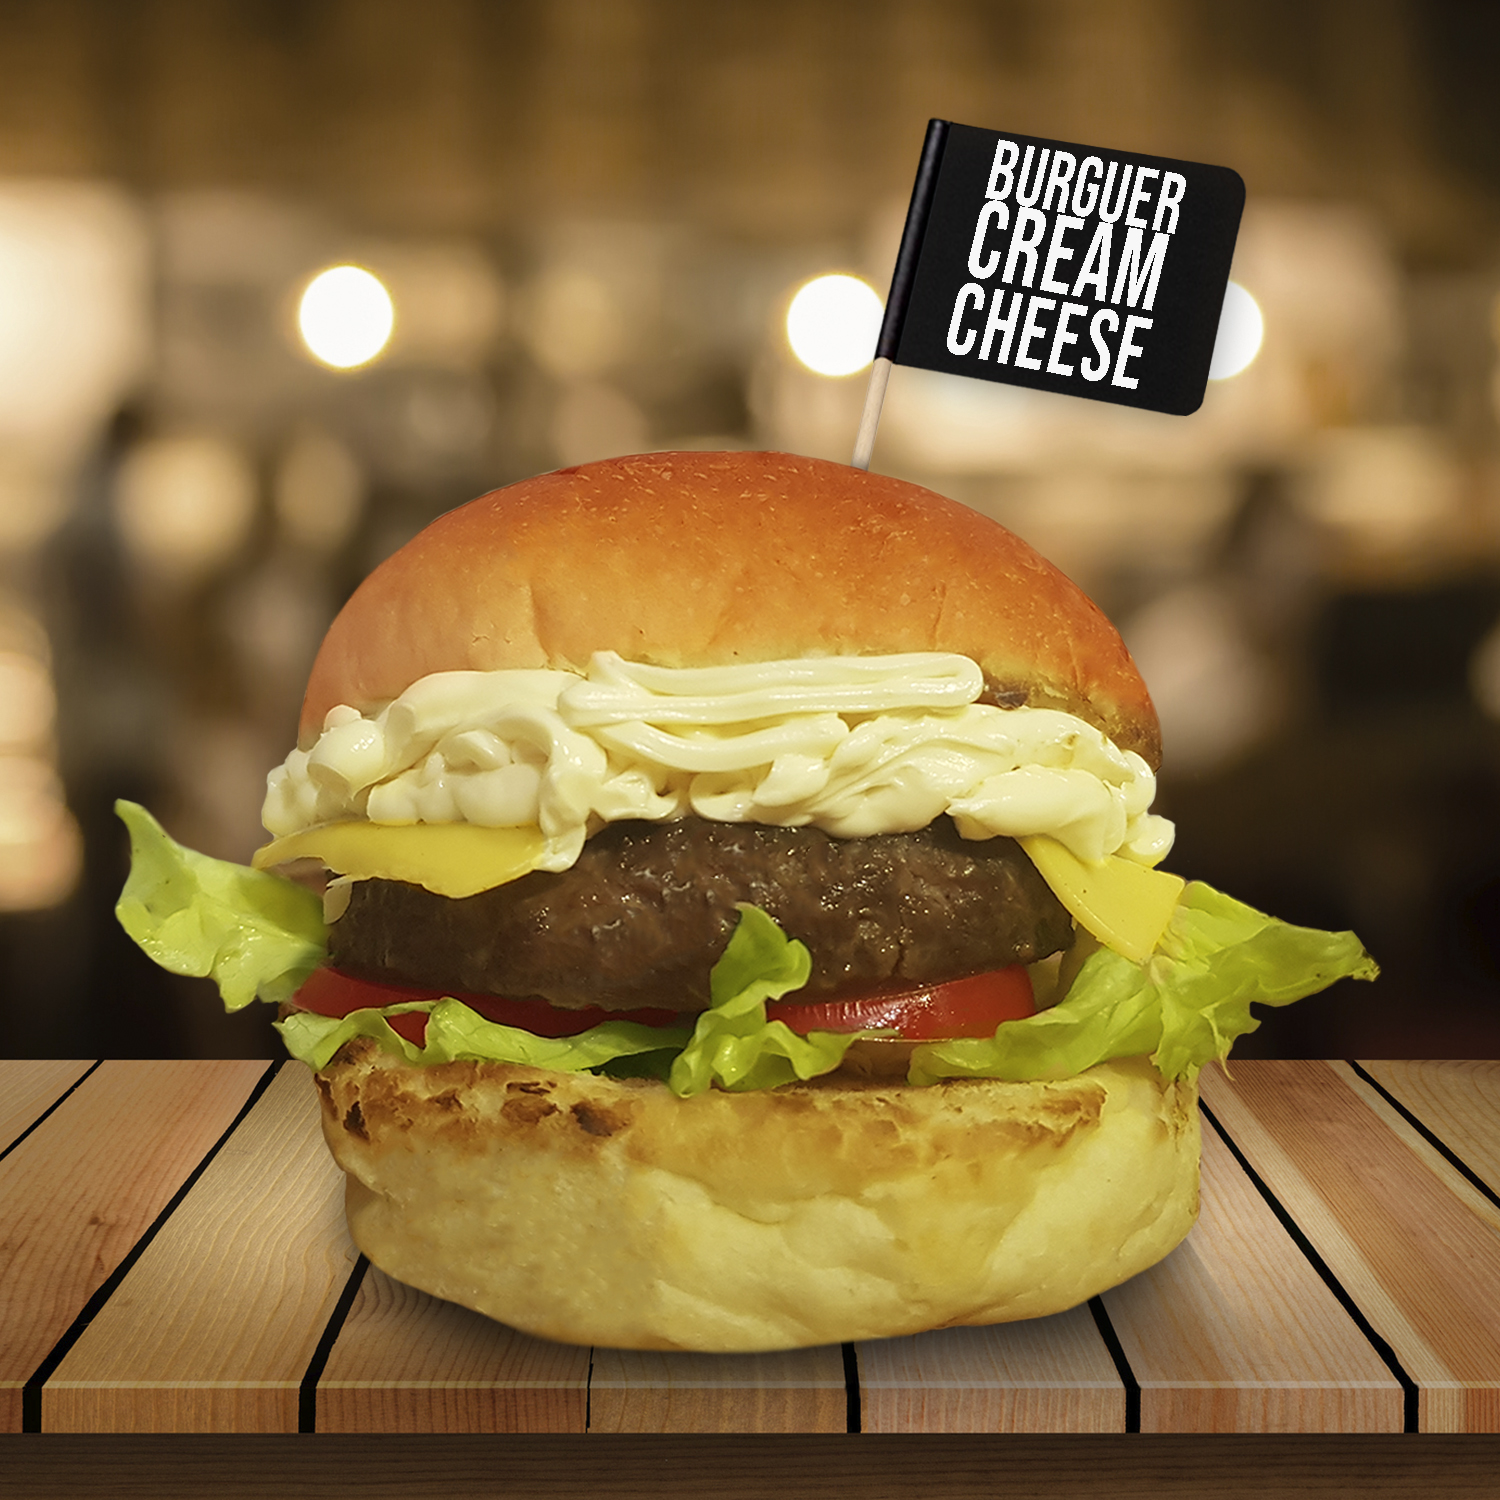 Chateau Burguer Cream Cheese